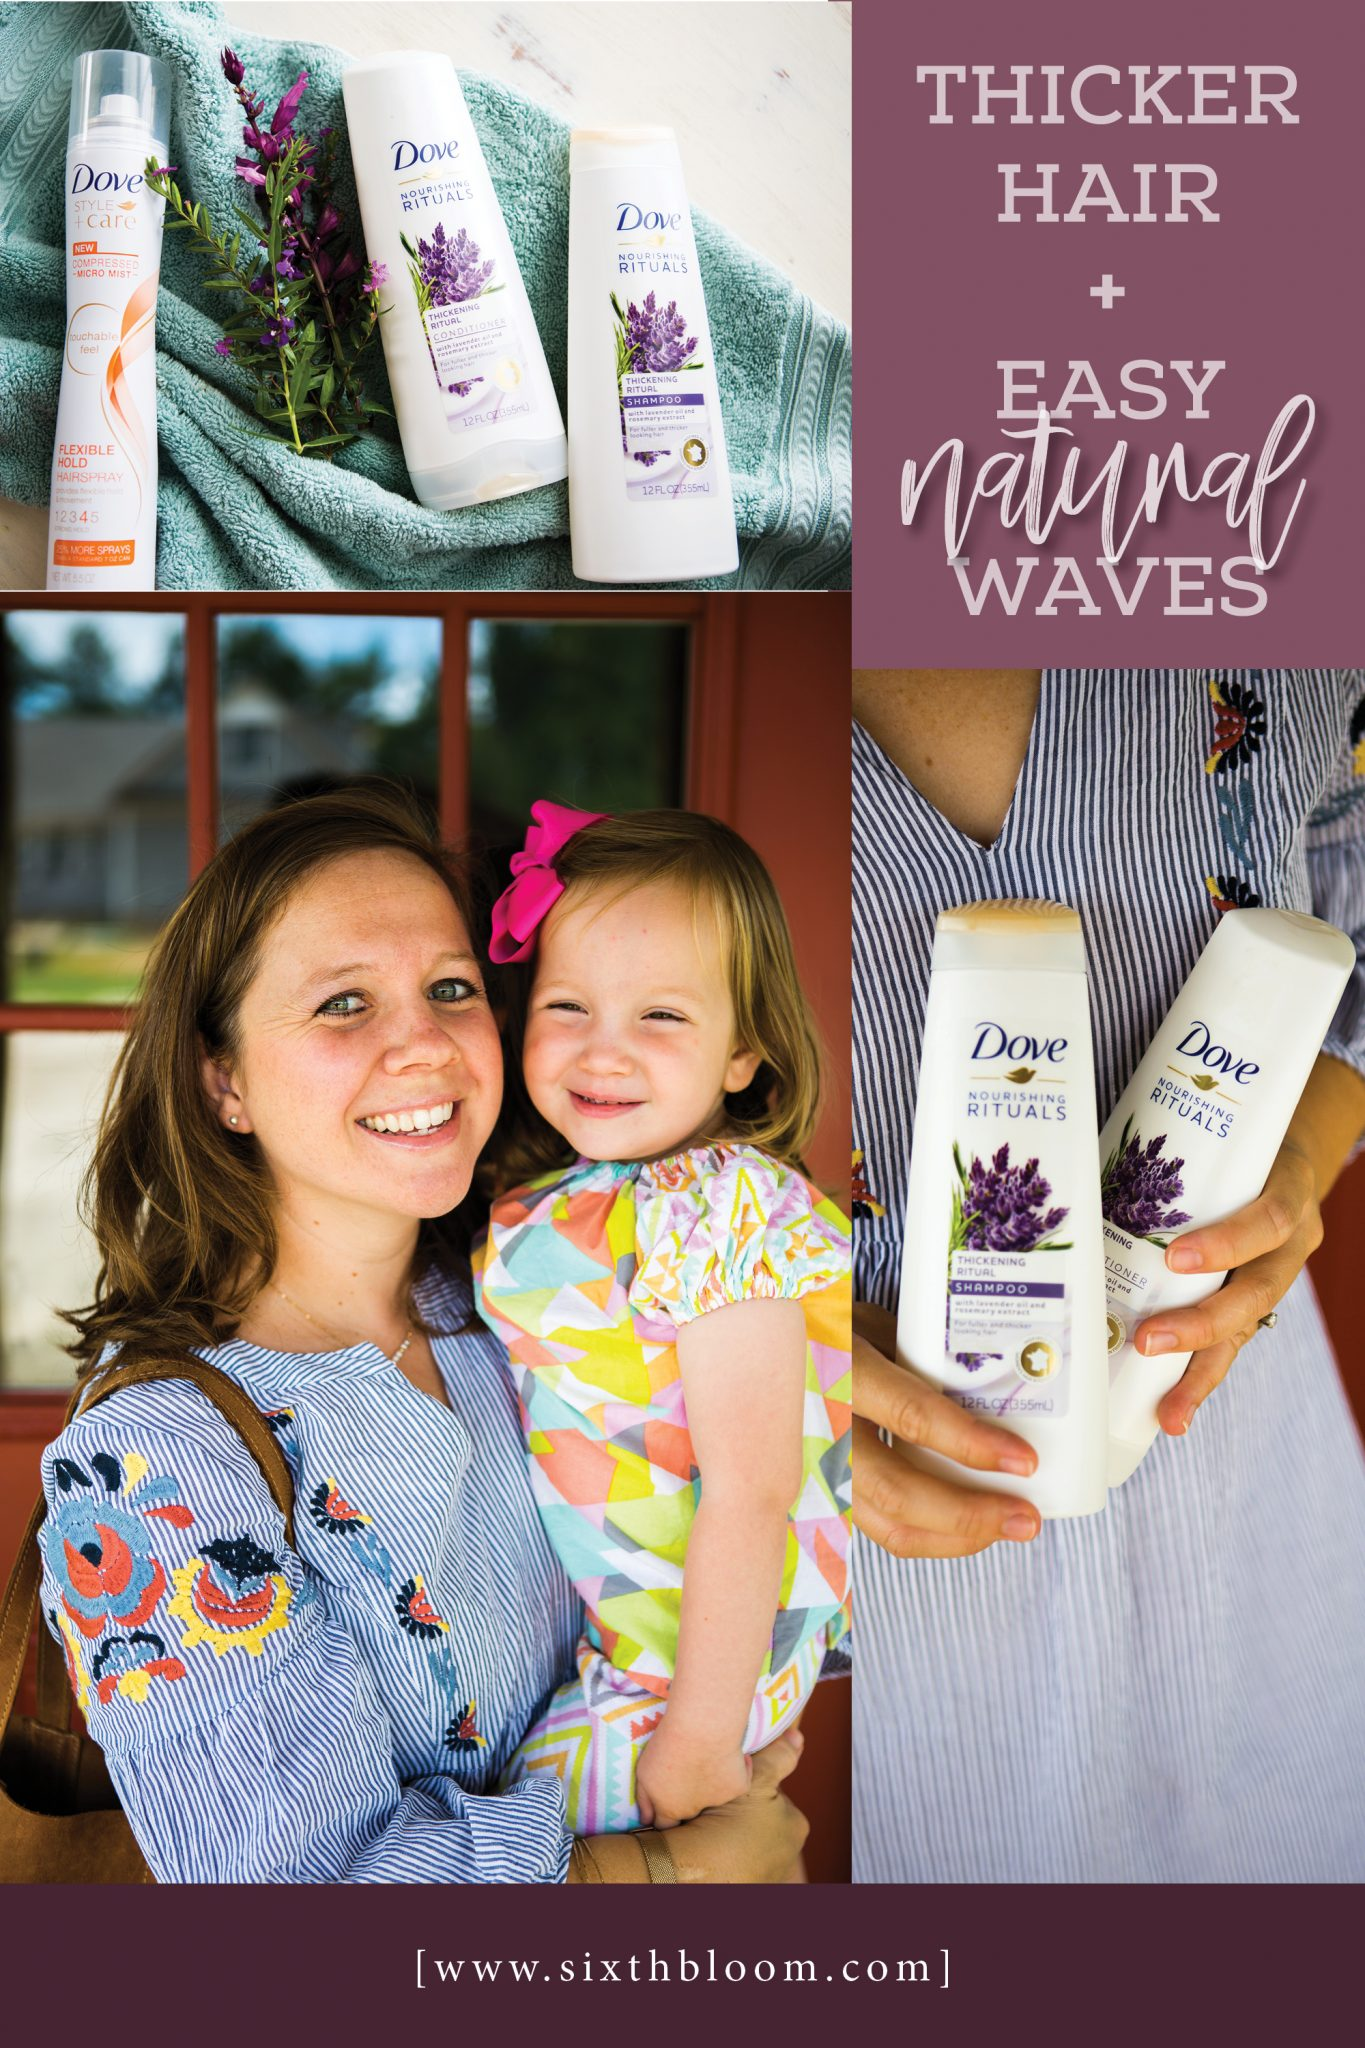 Thicker Hair - Easy Natural Waves